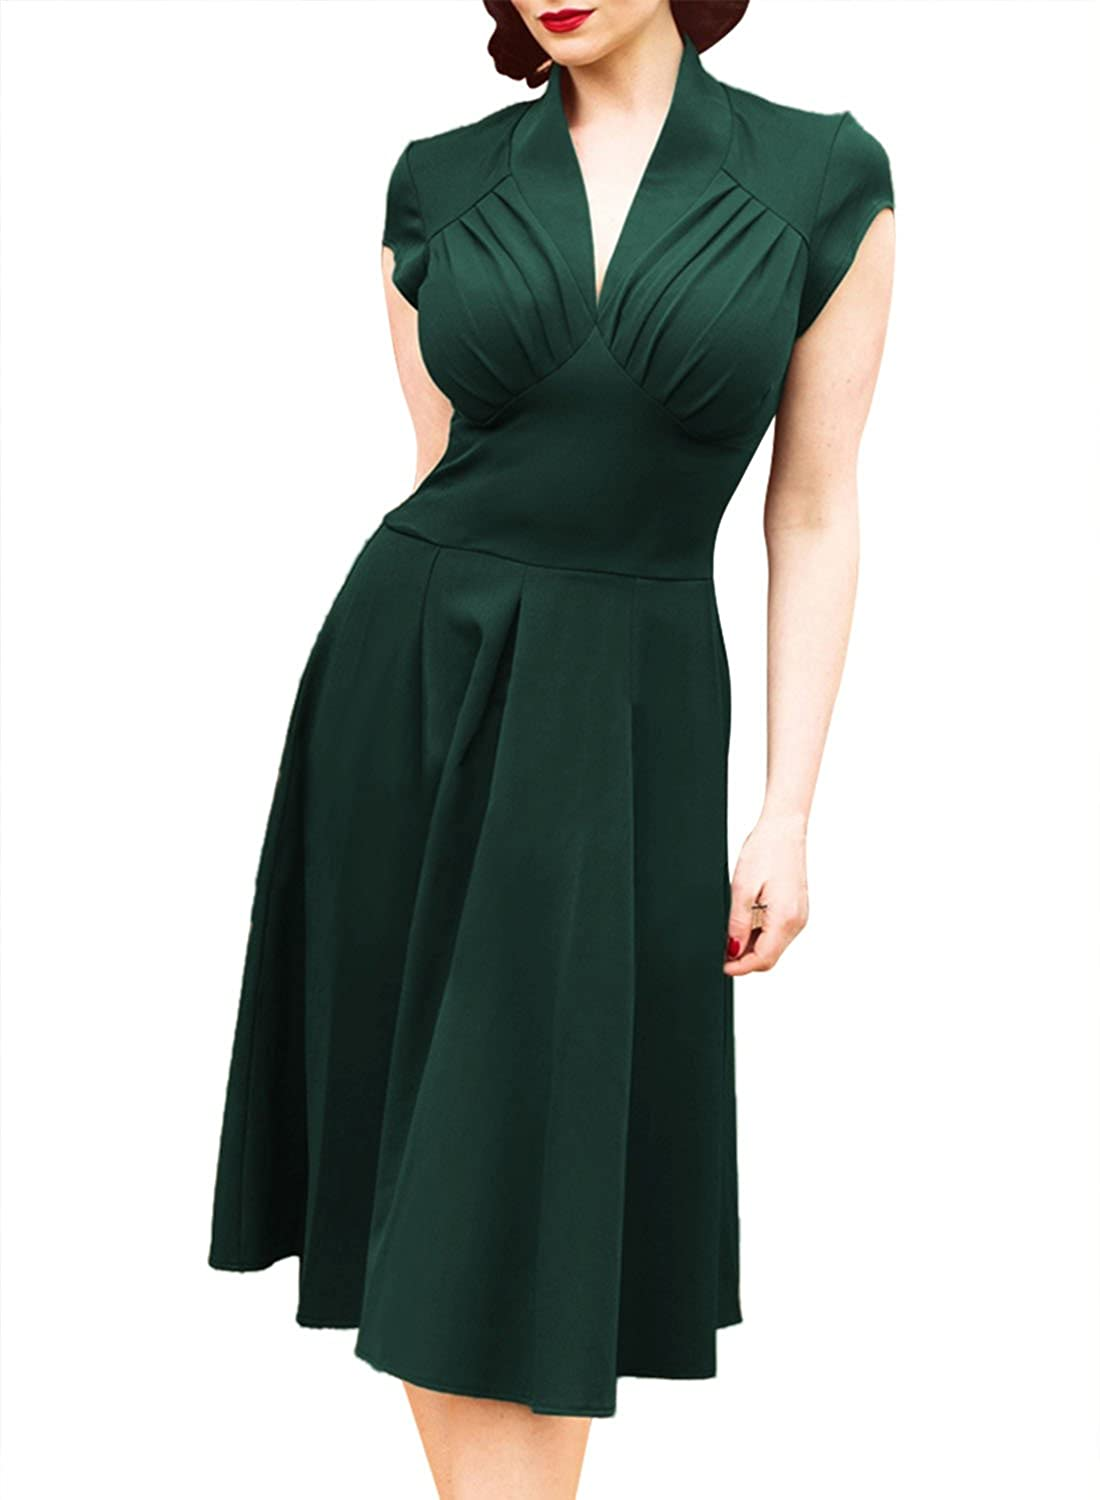 50s Dresses UK | 1950s Dresses, Shoes & Clothing Shops Sweetmeet Womens 1940s Vintage Rockabilly Ball Gown Flared Dress Swing Skaters £25.99 AT vintagedancer.com